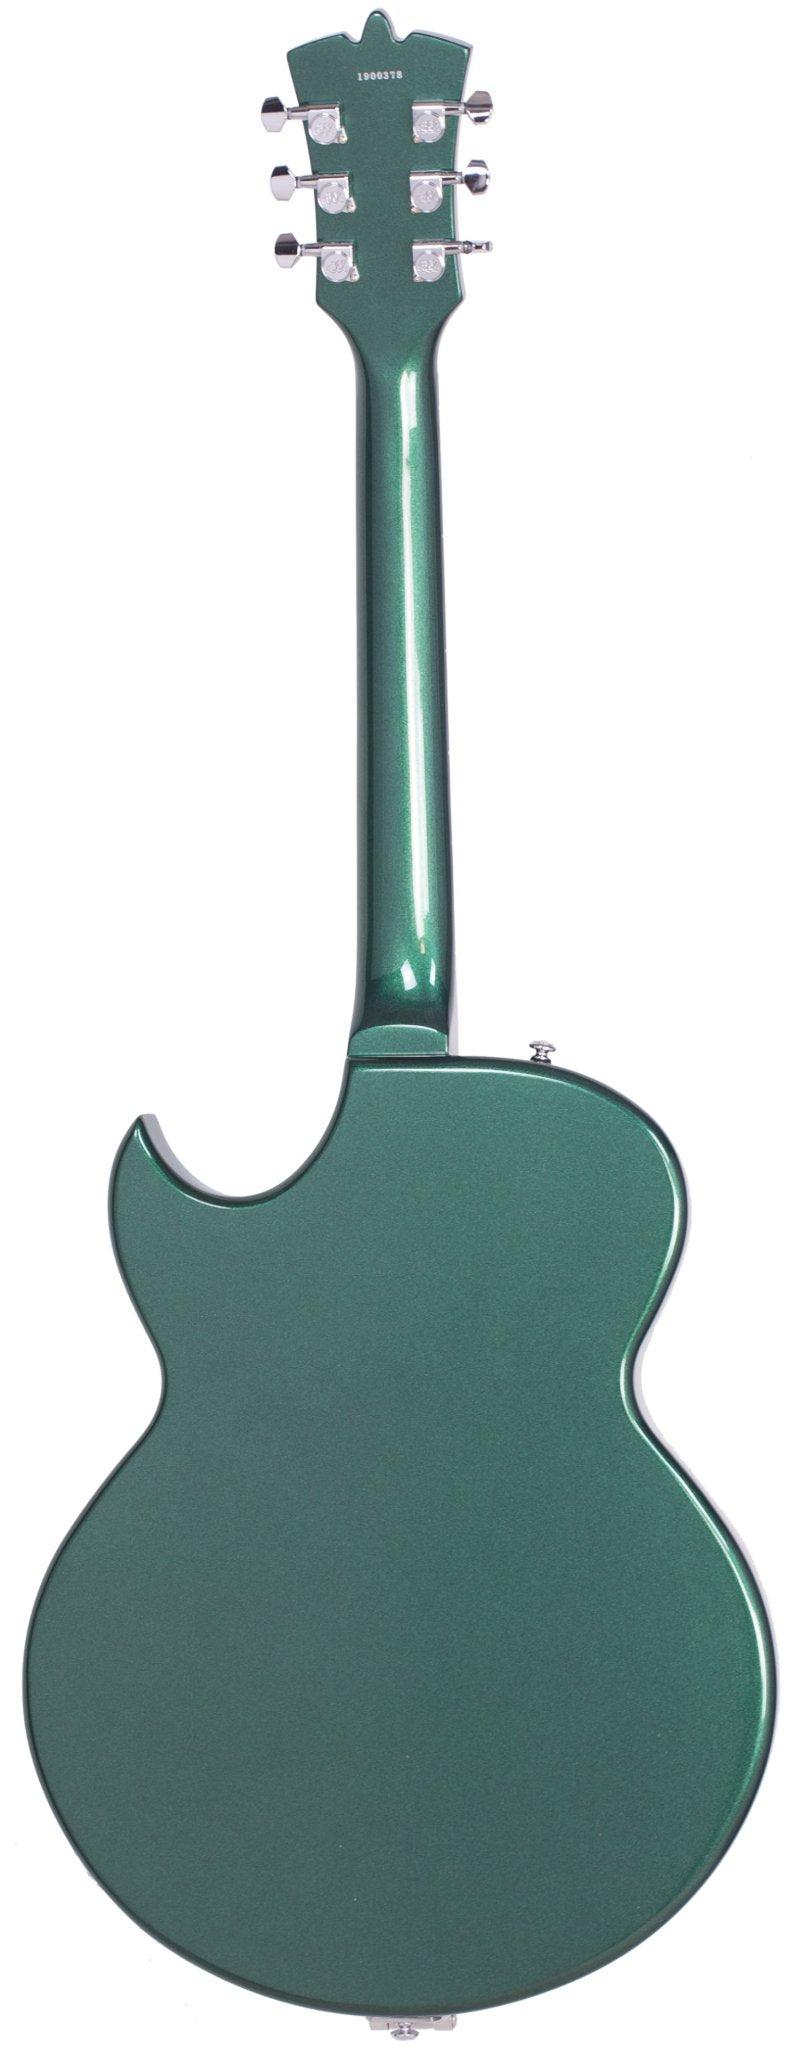 Eastwood Guitars Backlund Rockerbox II DLX Cadillac Green Full Back